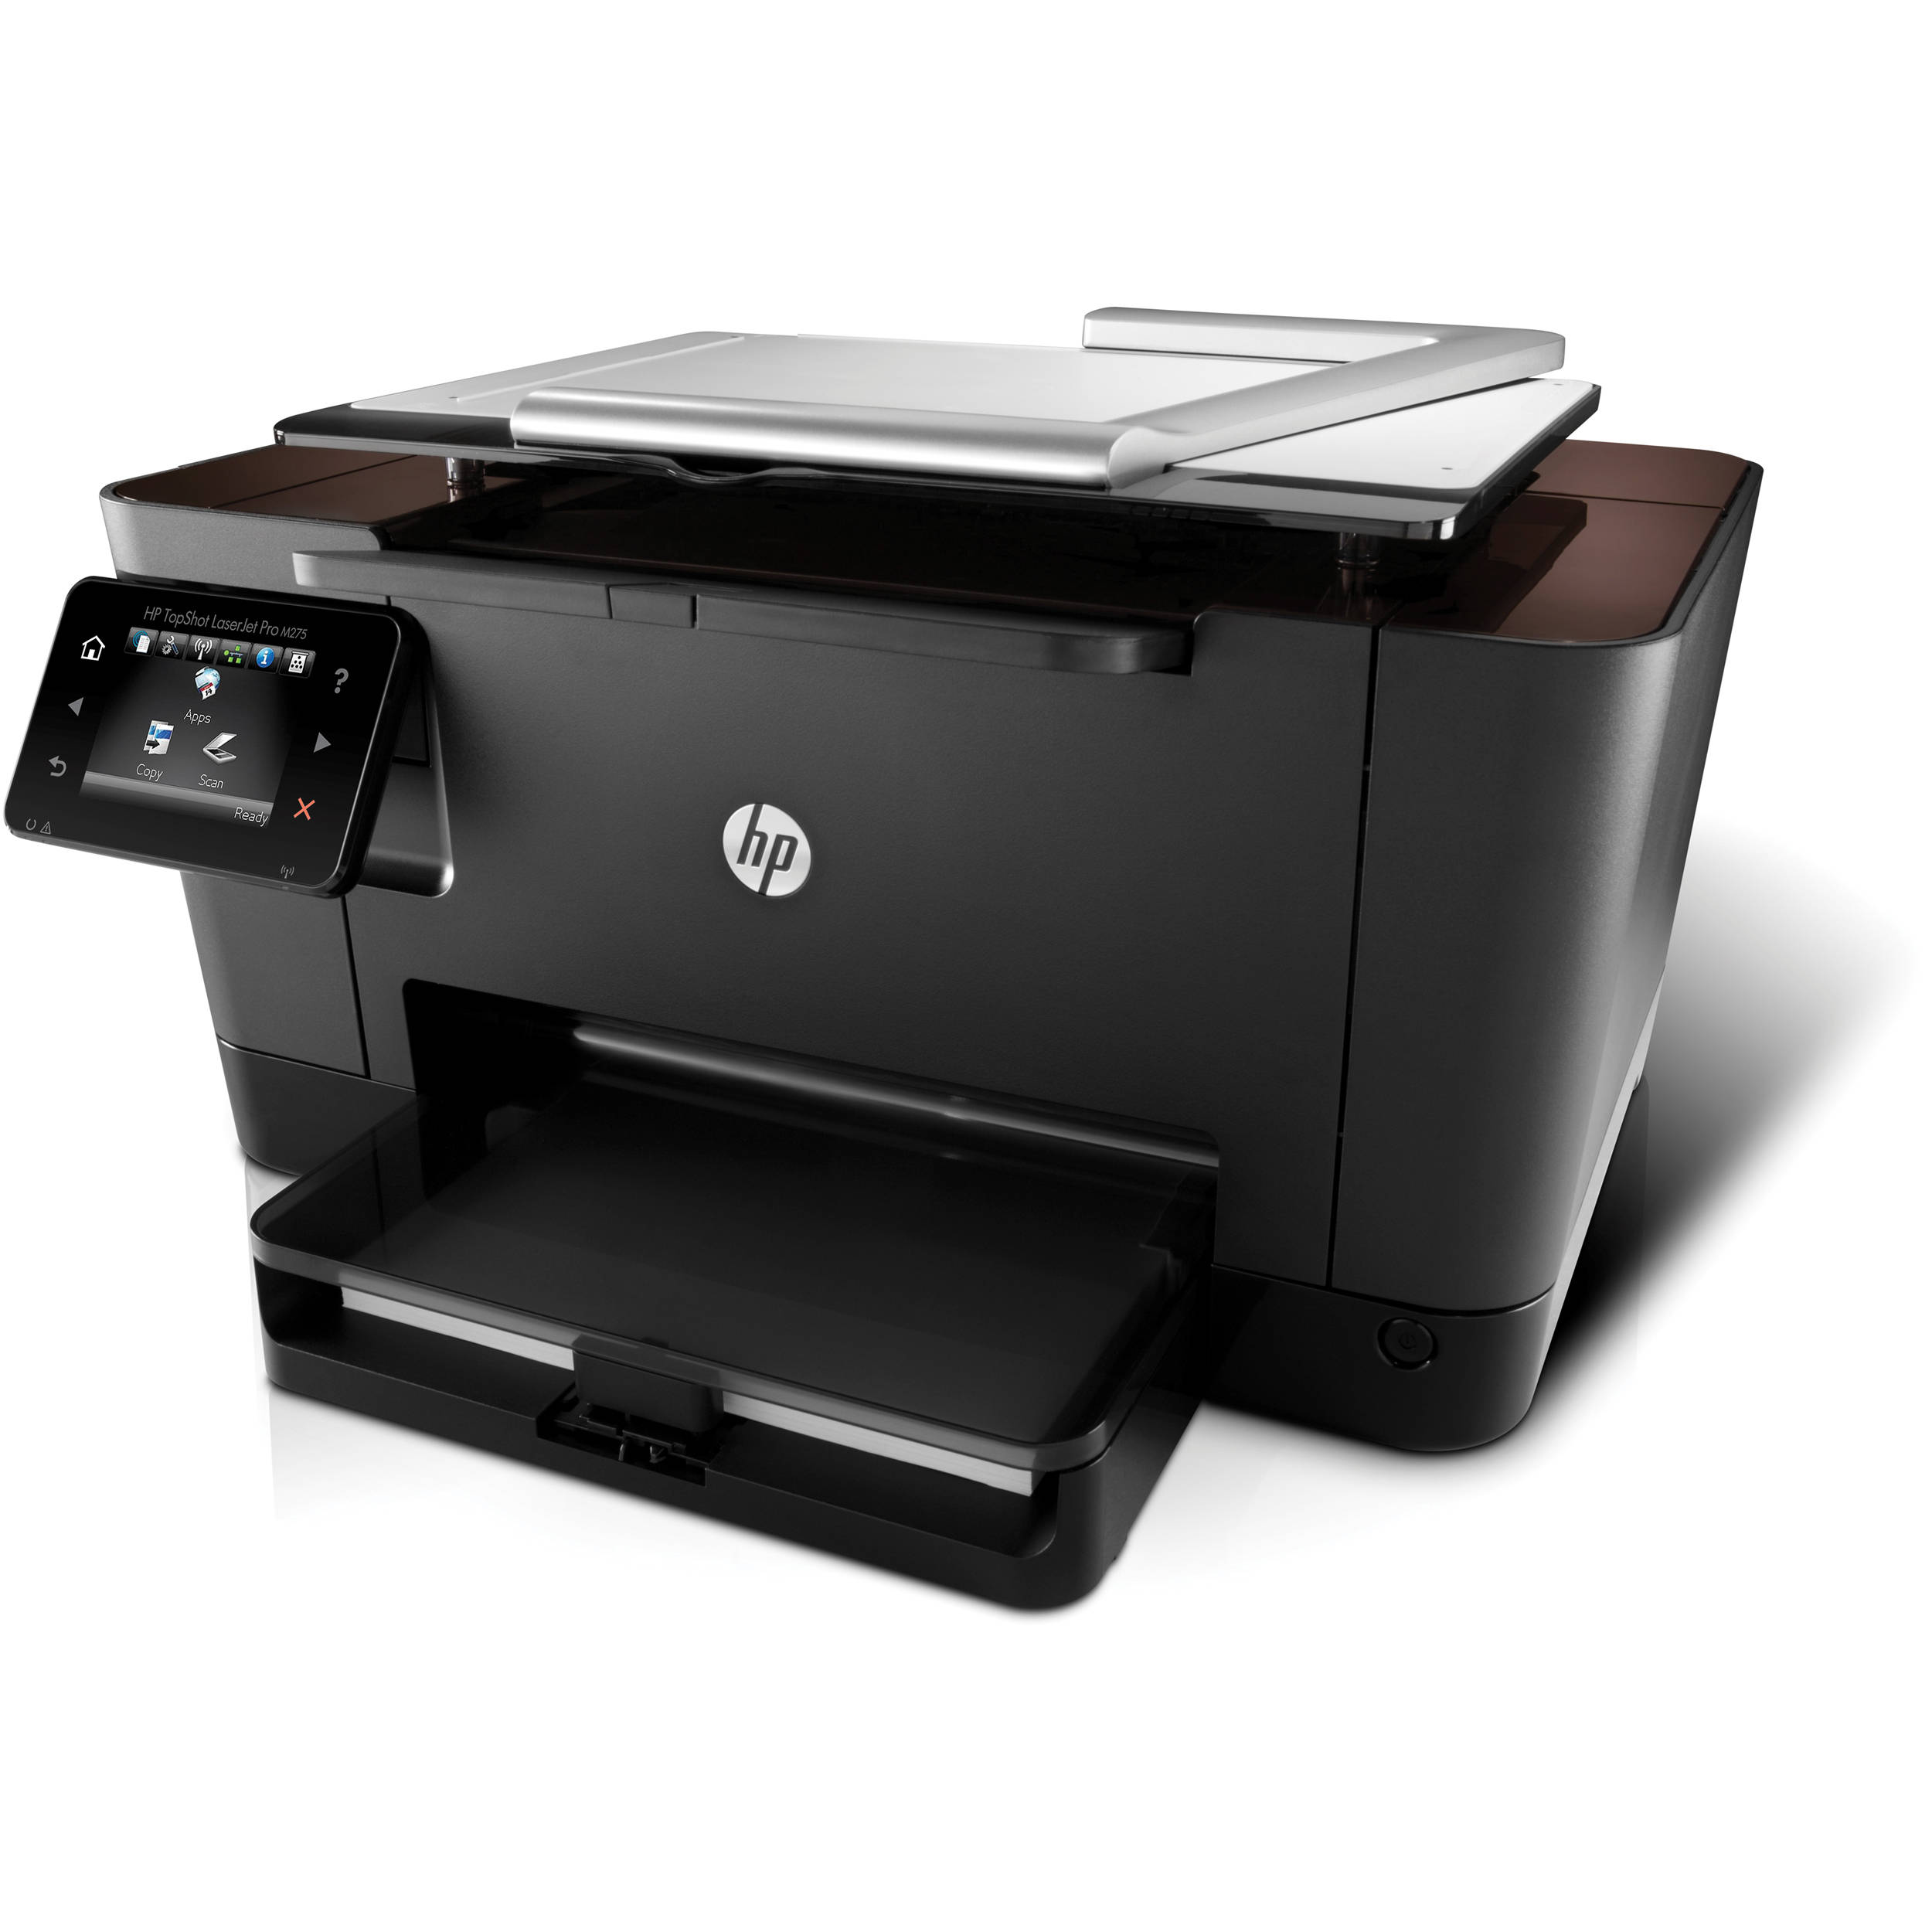 HP M275 DRIVER DOWNLOAD FREE